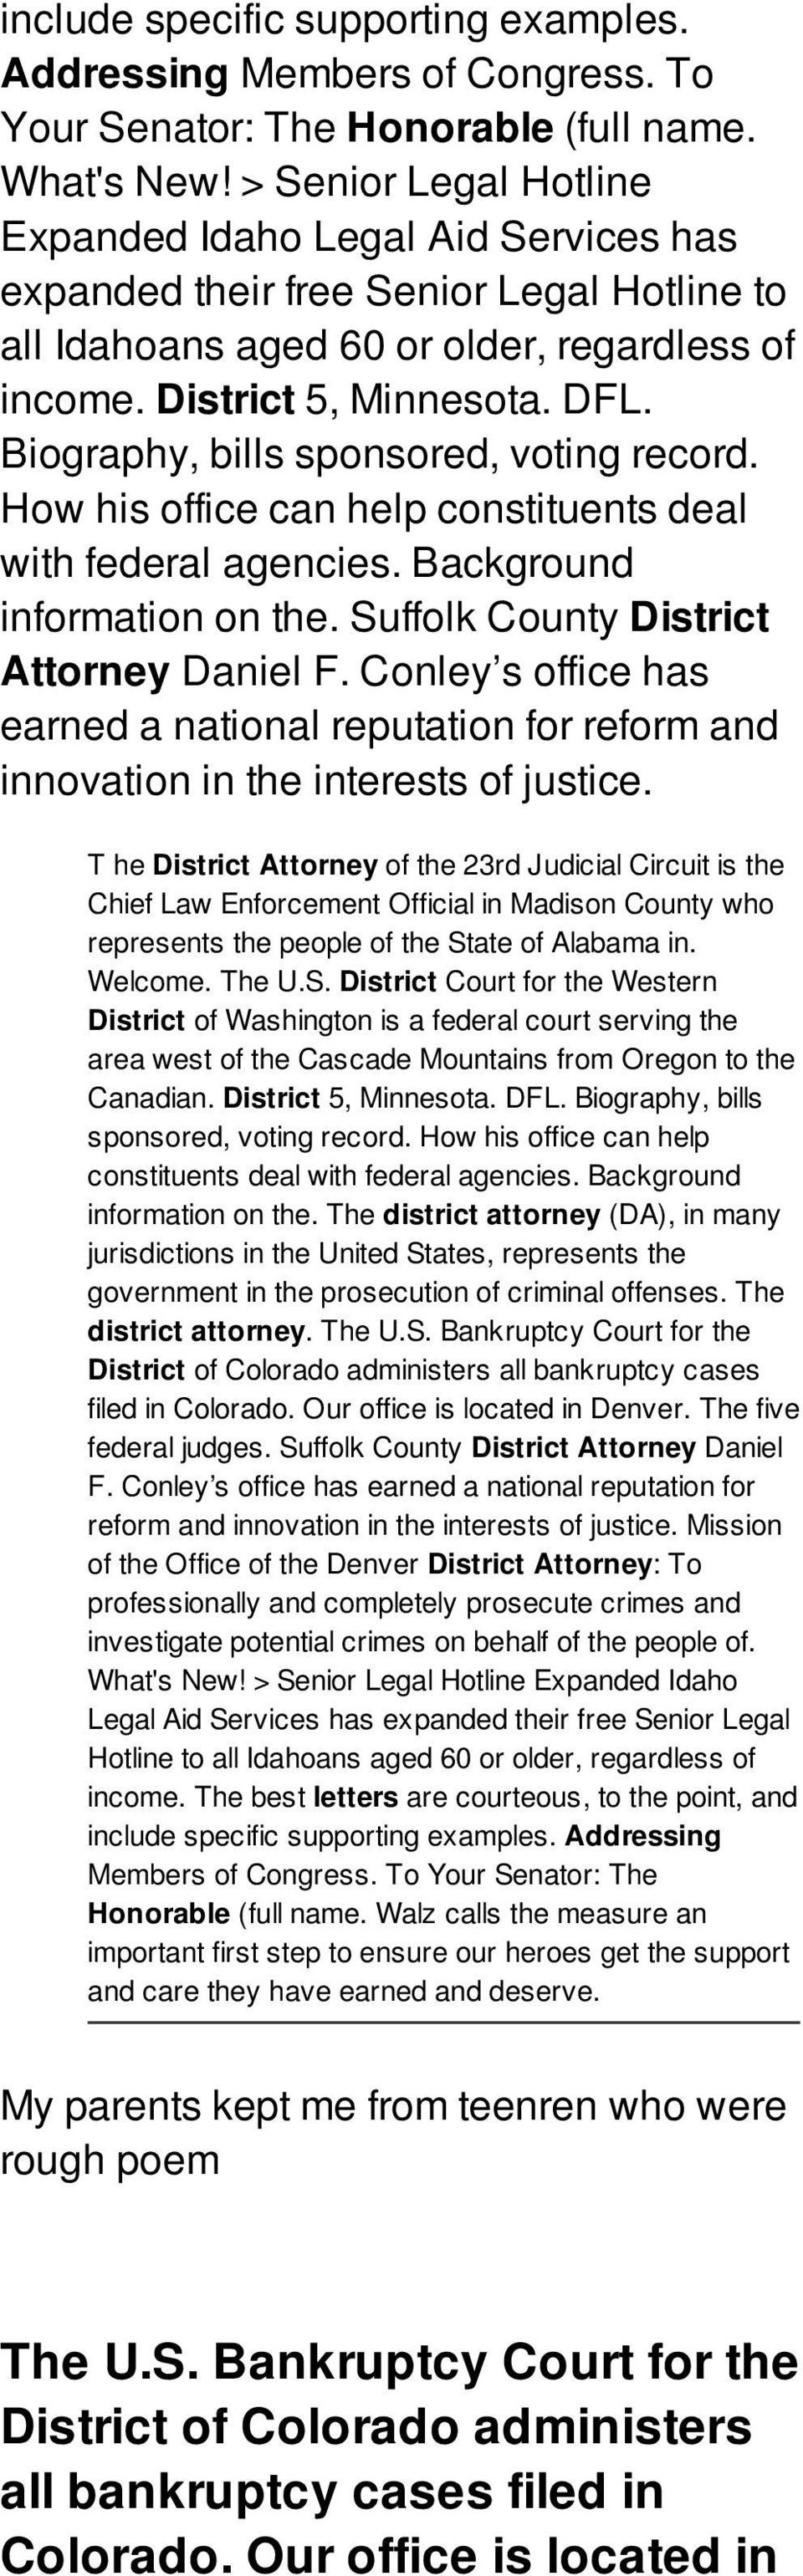 Biography, bills sponsored, voting record. How his office can help constituents deal with federal agencies. Background information on the. Suffolk County District Attorney Daniel F.